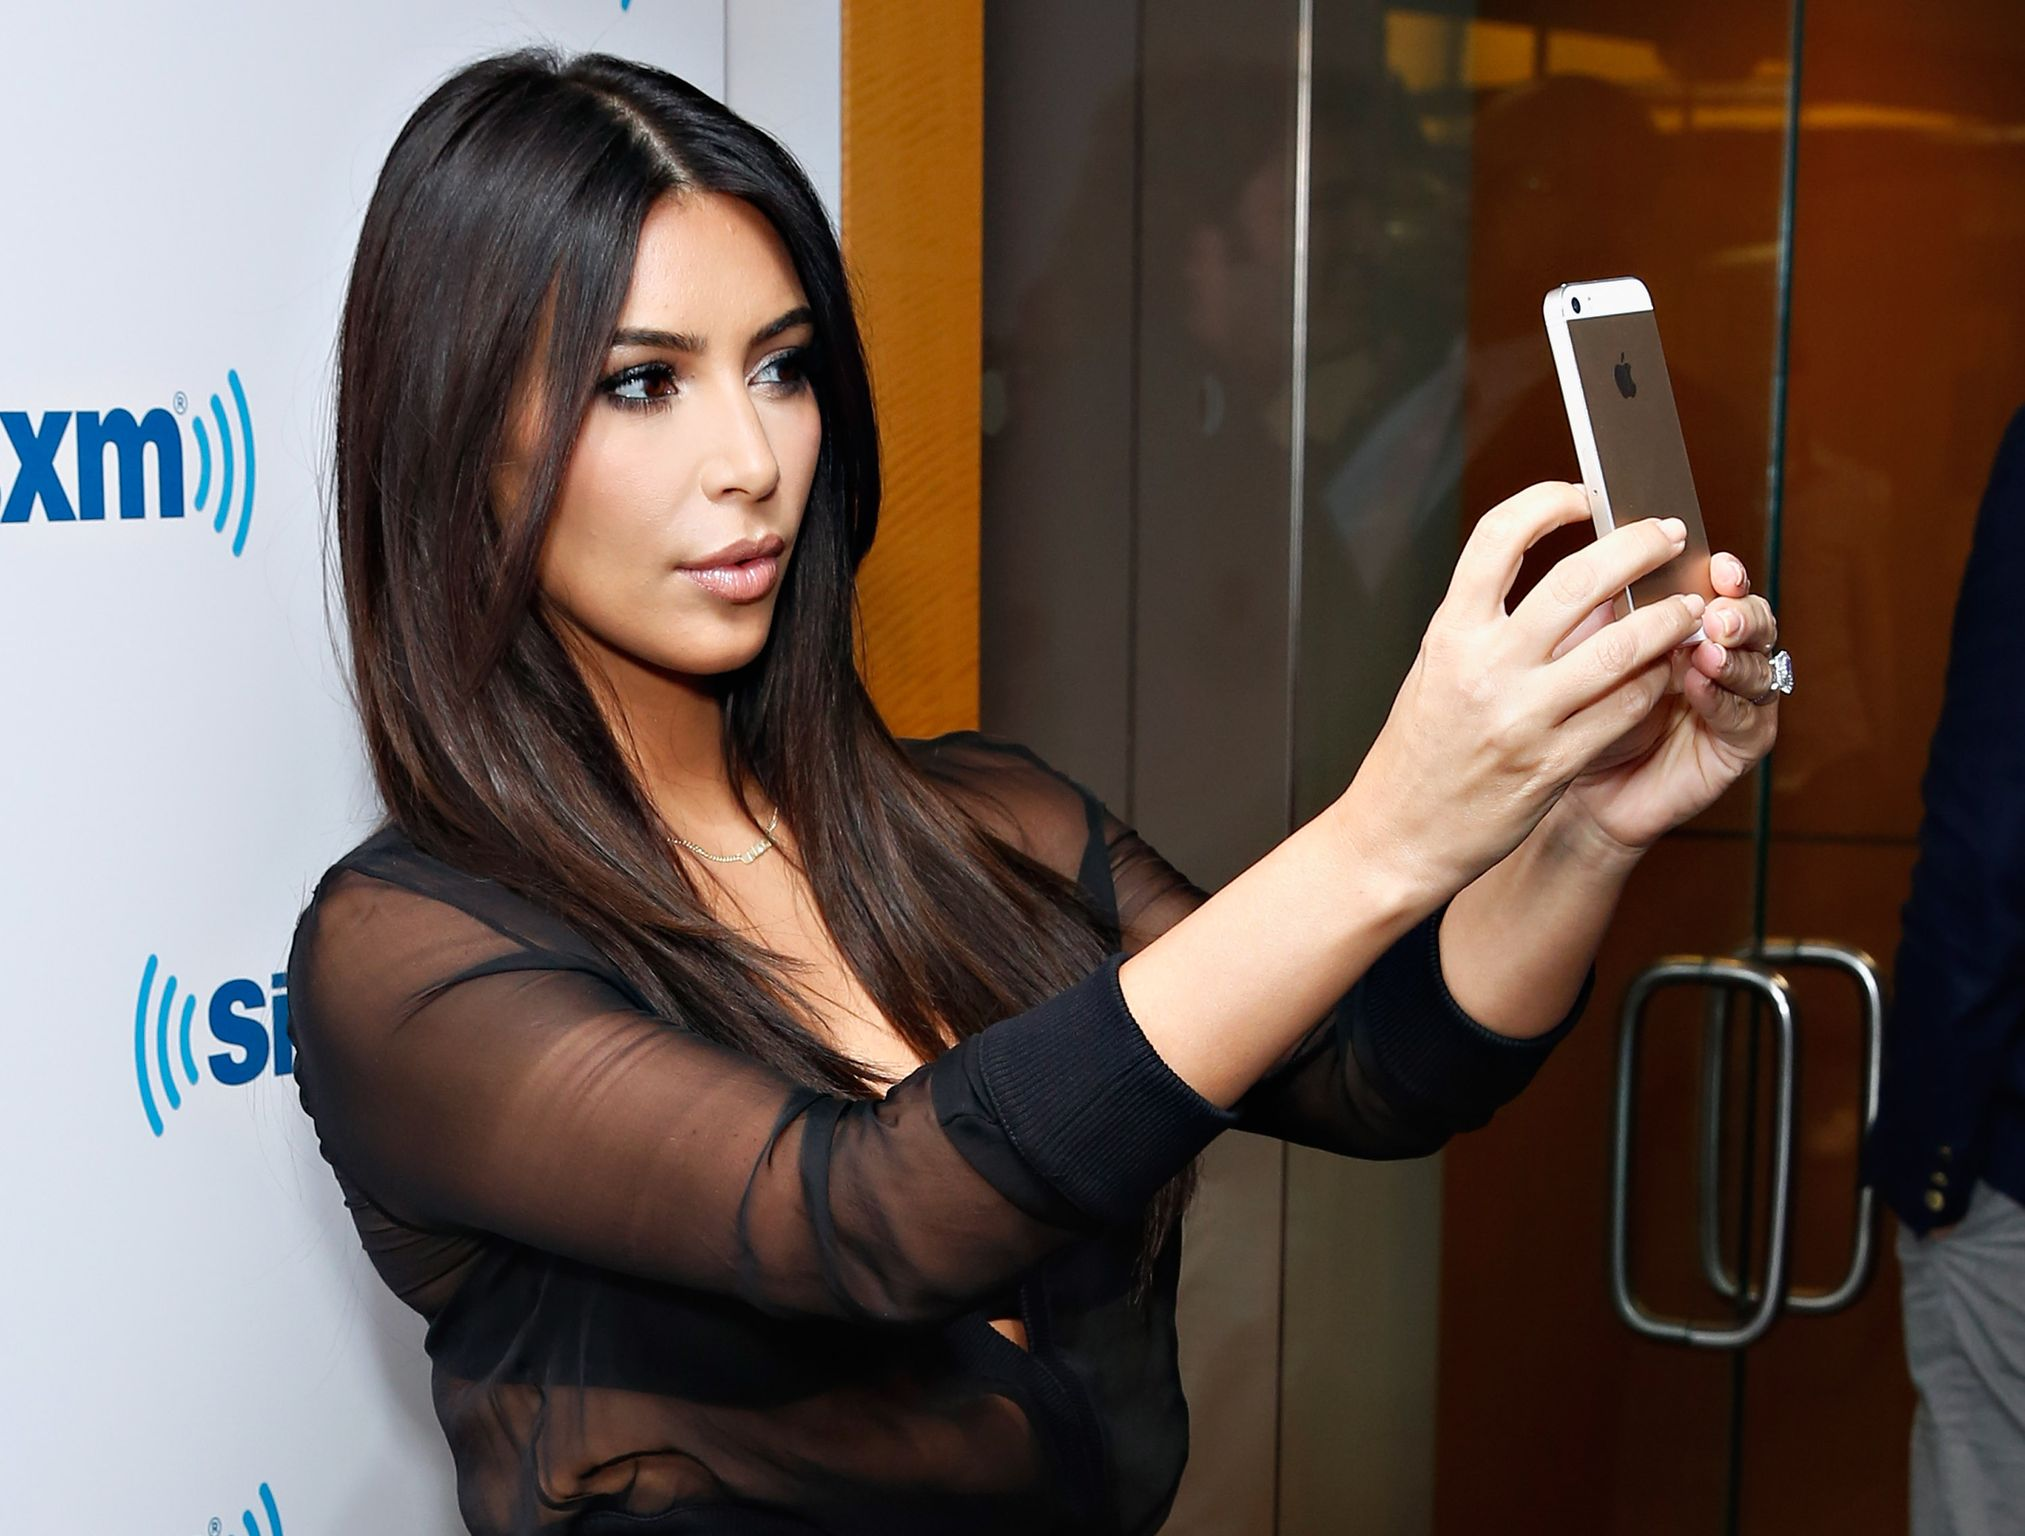 Kim Kardashian at the SiriusXM Studios on August 11, 2014 in New York. | Photo: Getty Images